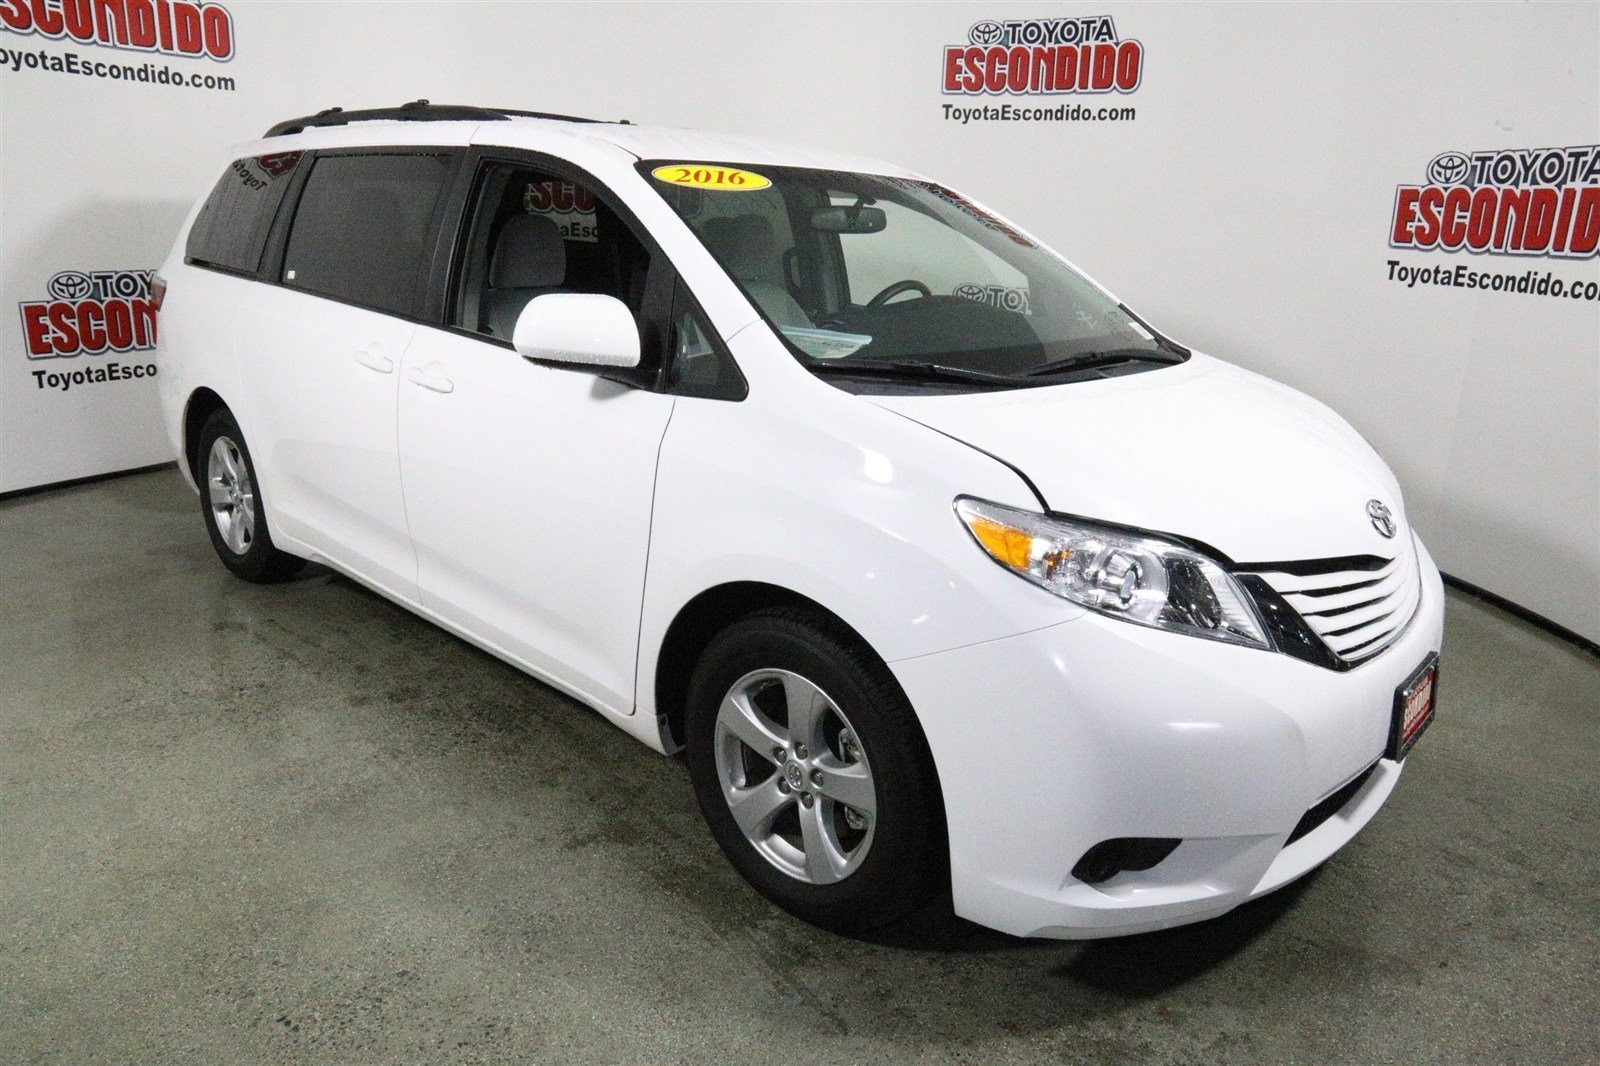 pre owned 2016 toyota sienna le mini van passenger in escondido 1010290 toyota escondido. Black Bedroom Furniture Sets. Home Design Ideas